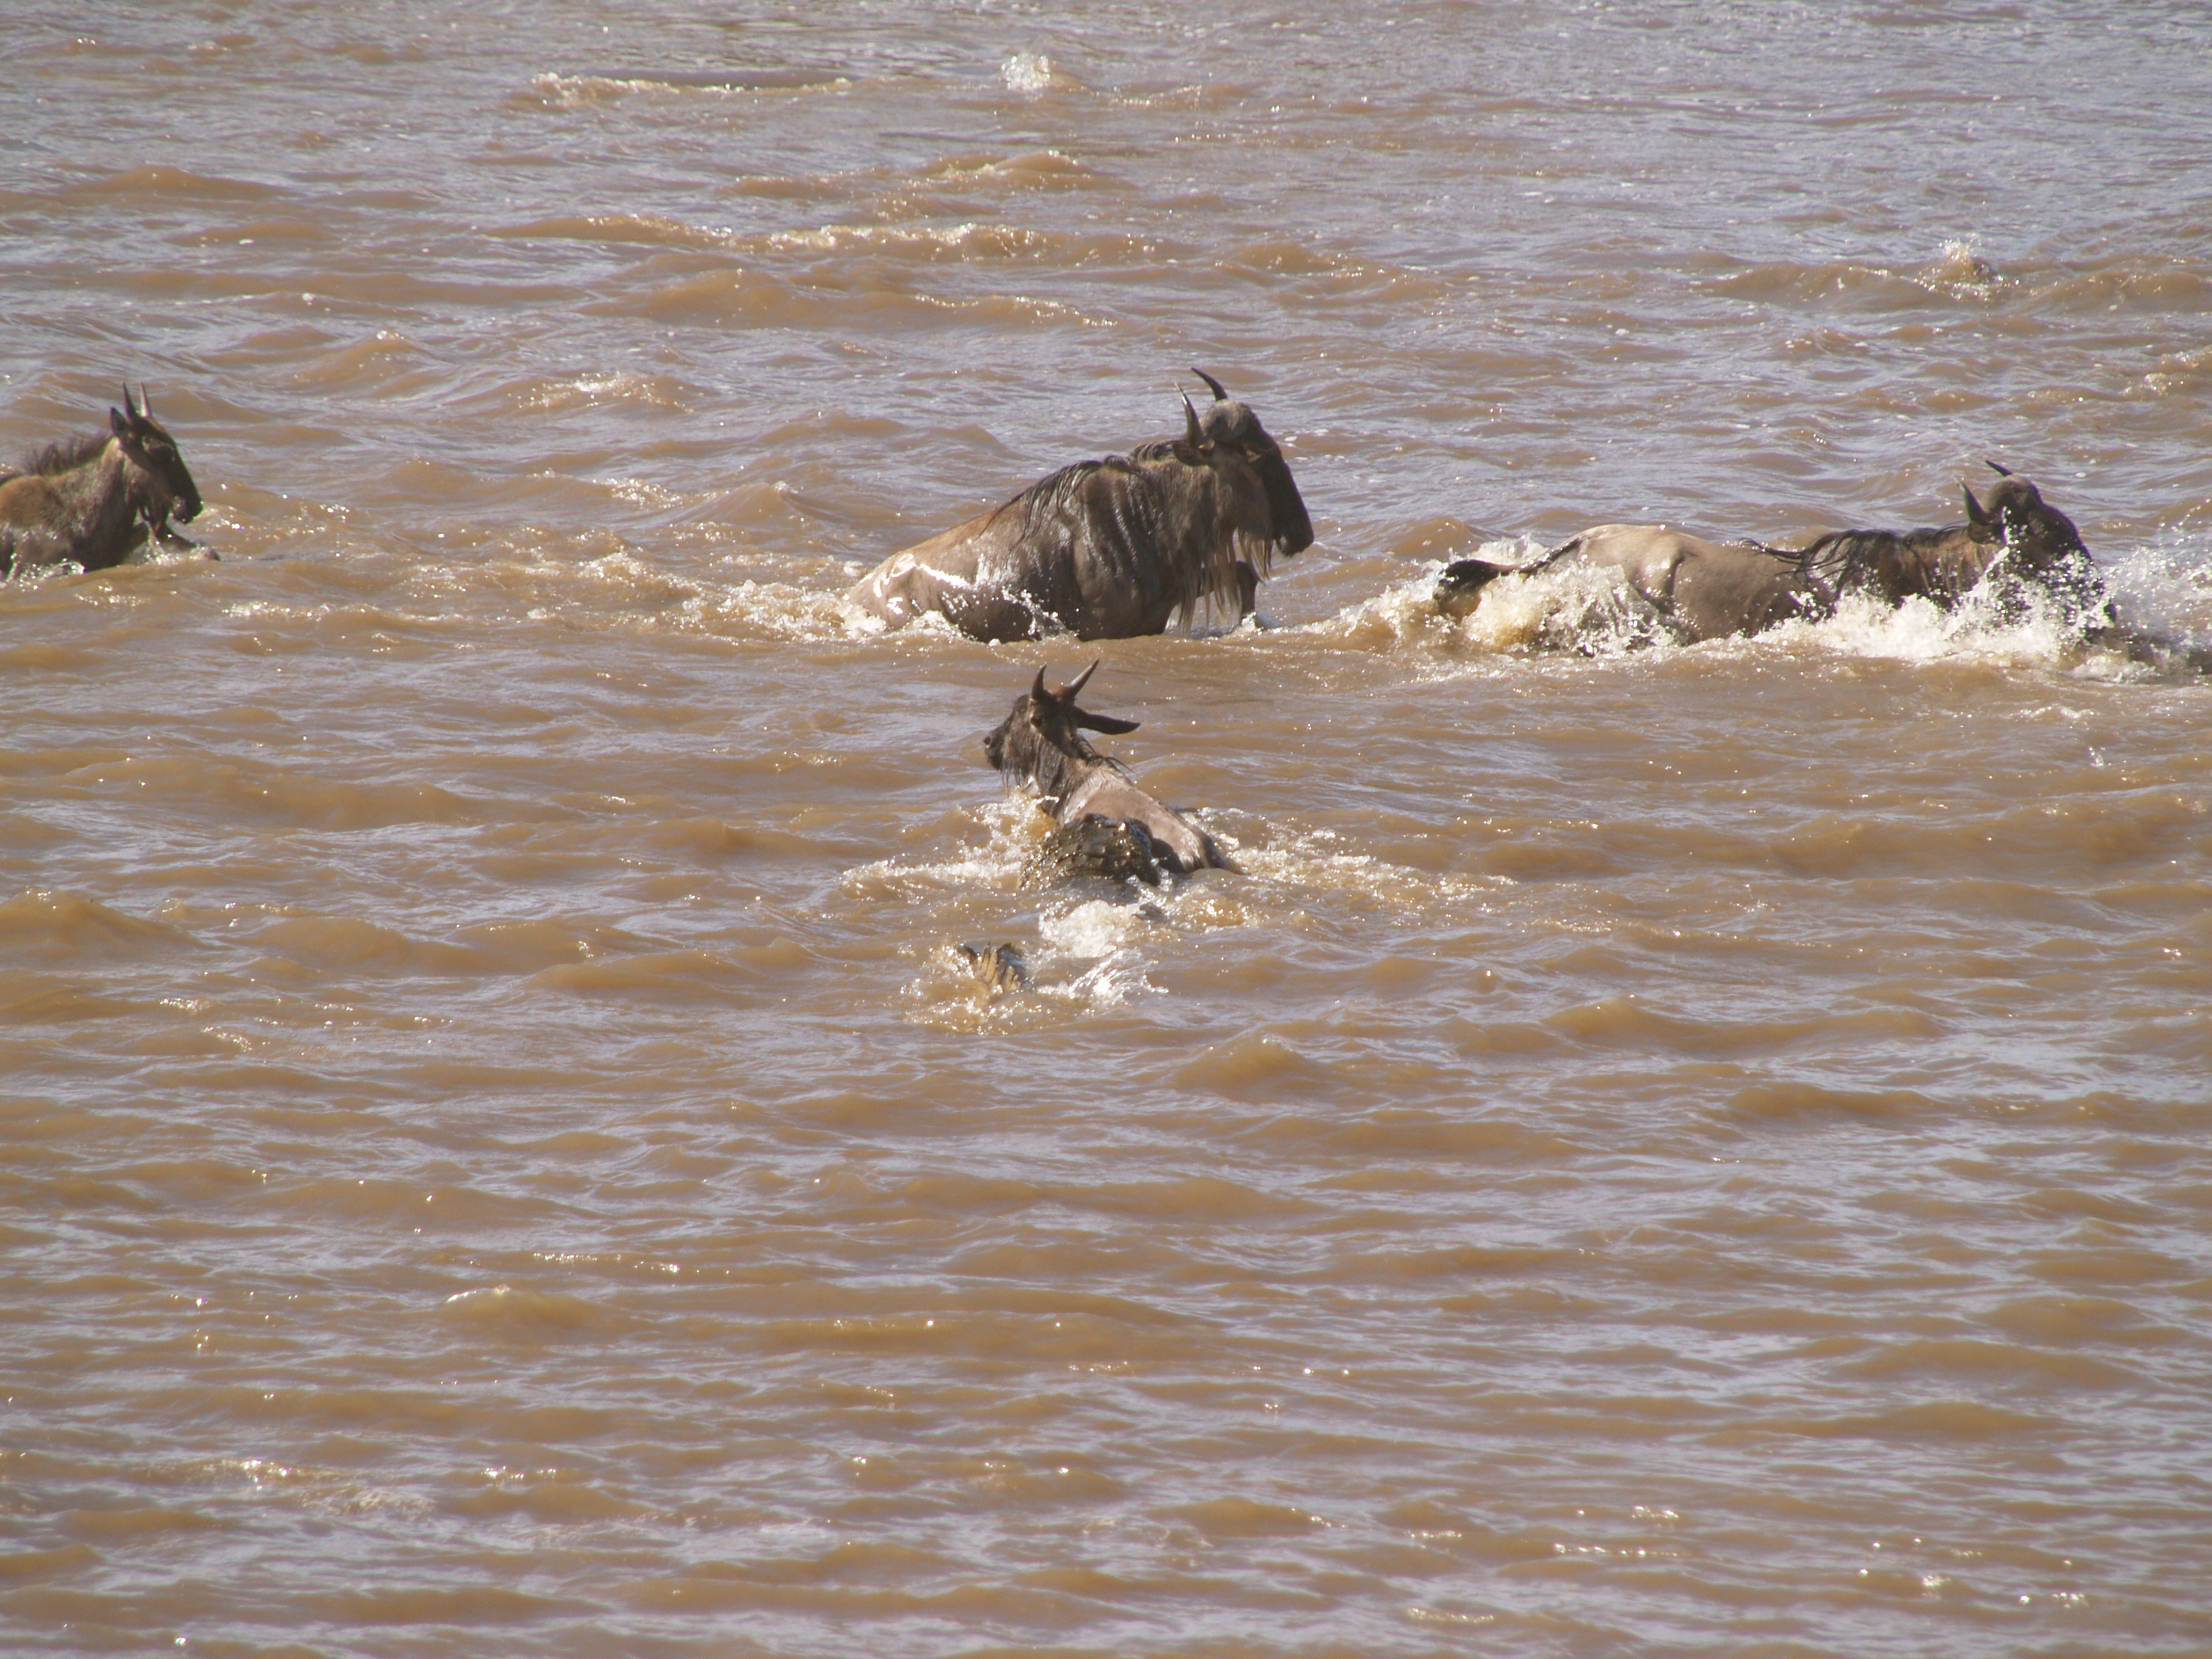 croc has a hold on the wildebeest